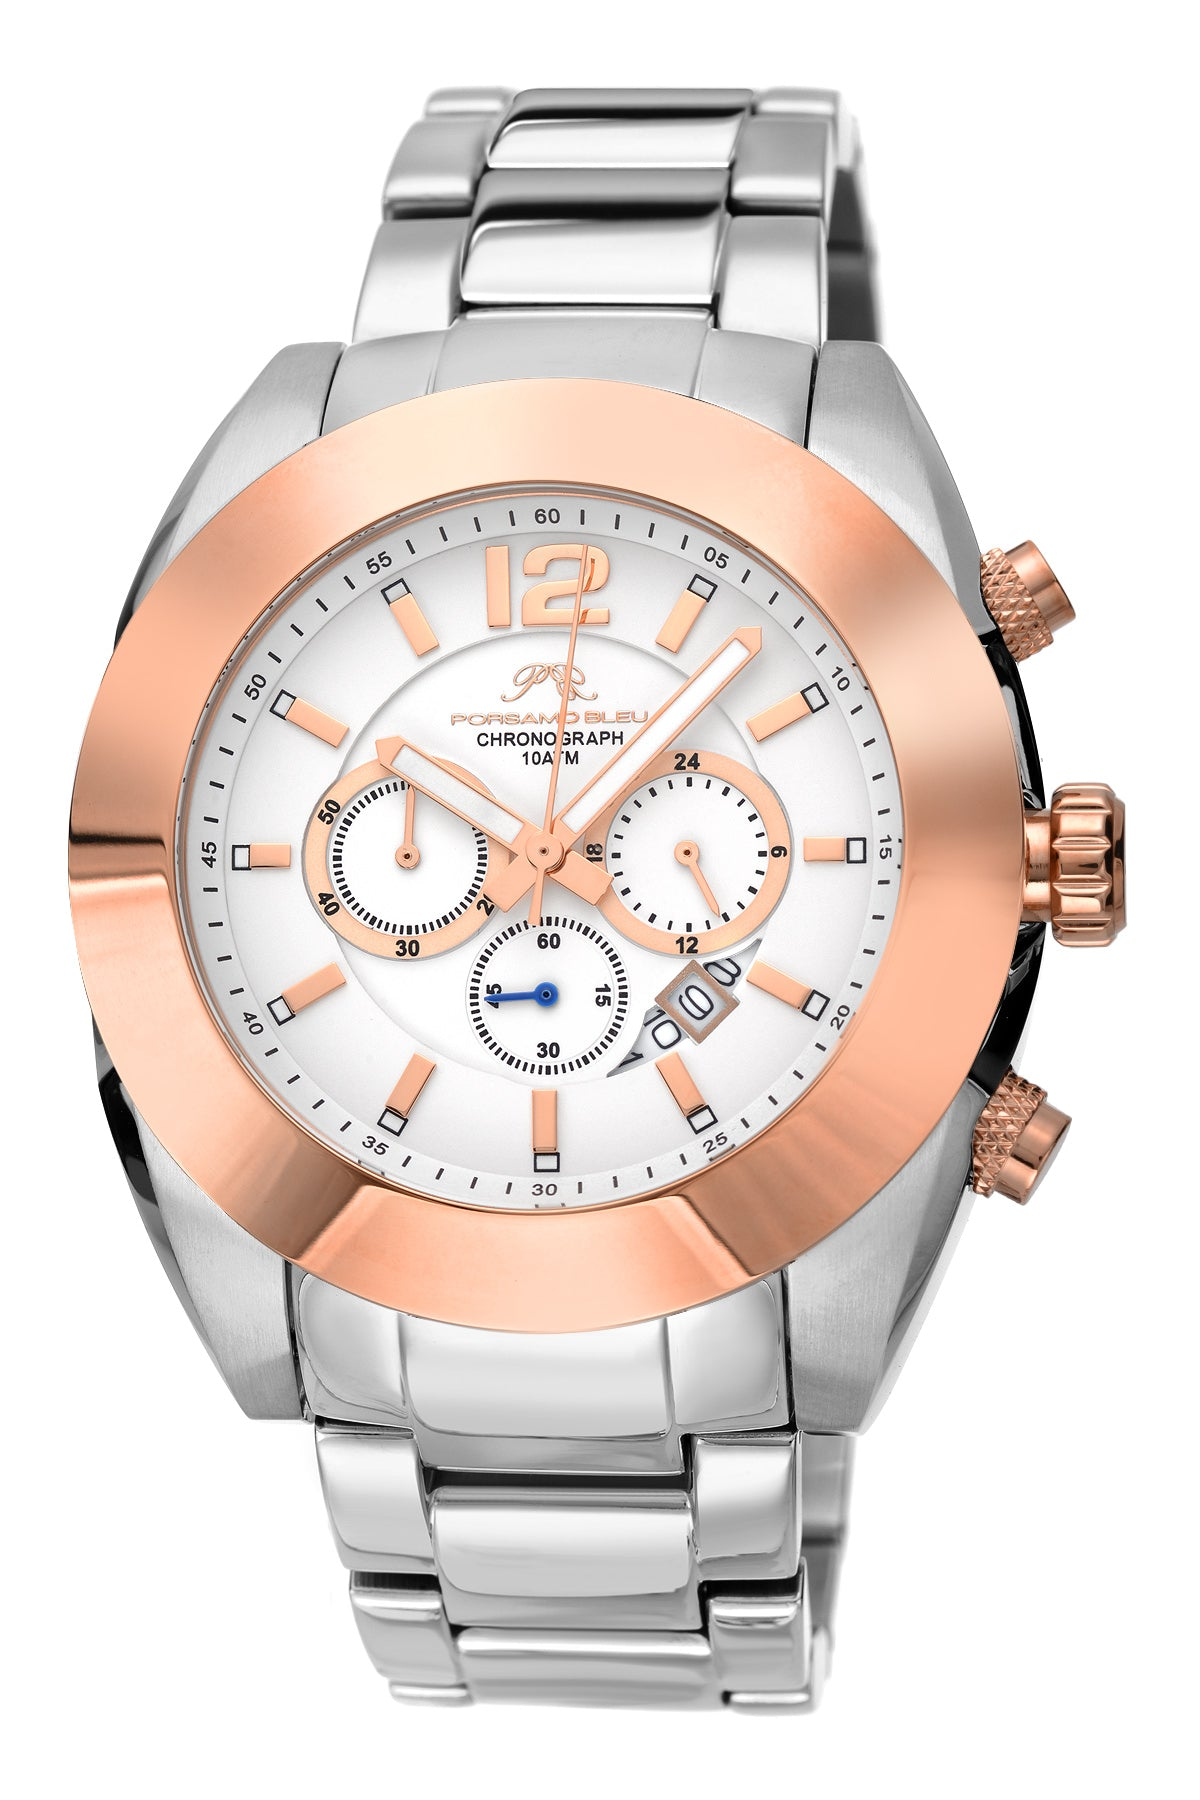 Porsamo Bleu Pascal luxury chronograph men's stainless steel watch, silver, rose 261APAS